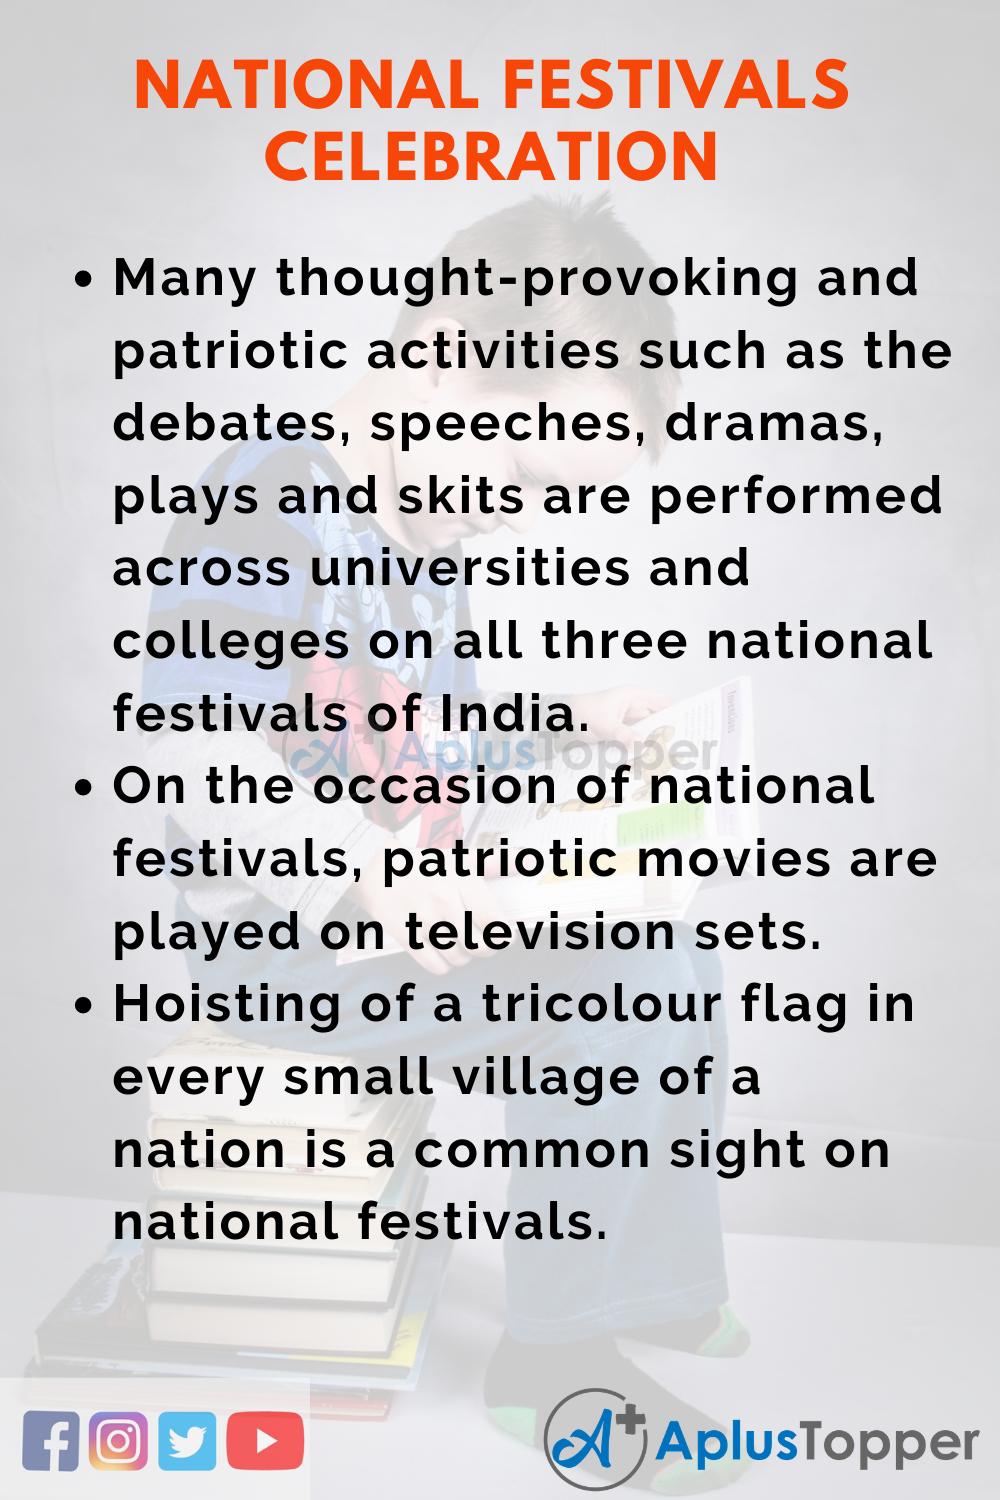 10 Lines On National Festivals Celebration for Higher Class Students